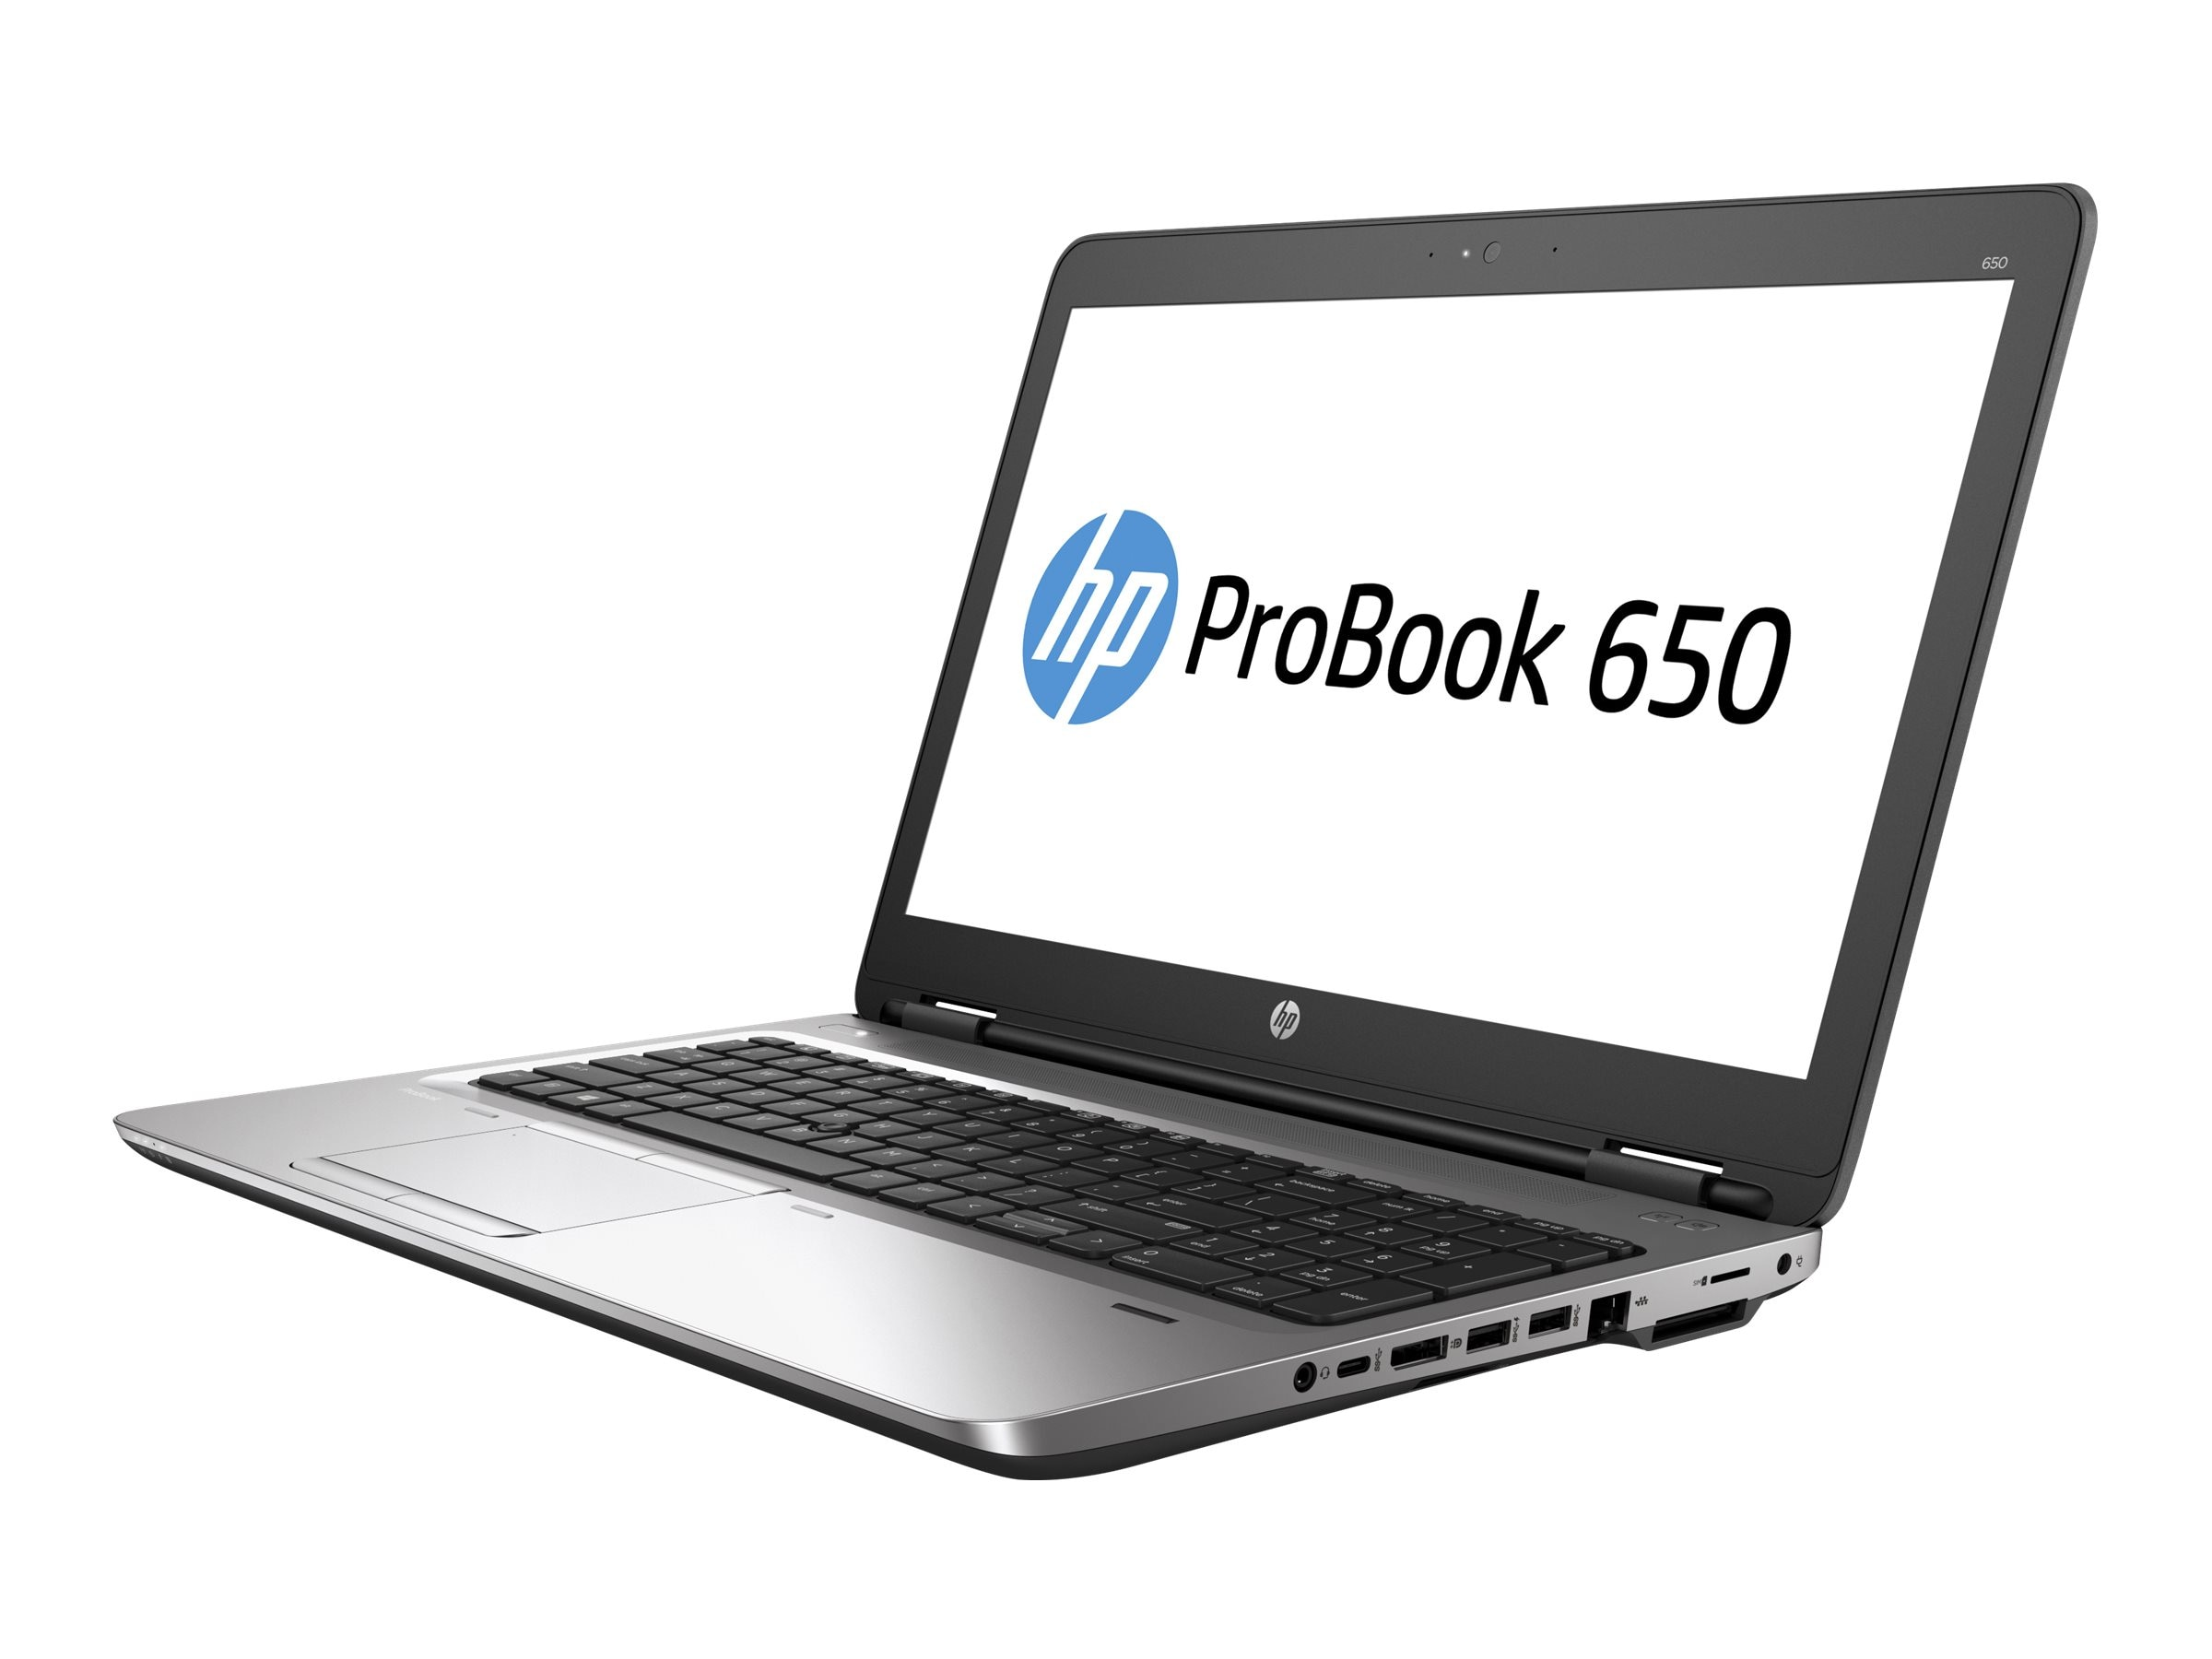 HP ProBook 650 G2 Core i7-6820HQ 2.7GHz 16GB 256GB SSD DVD SM BT 15.6 W10P